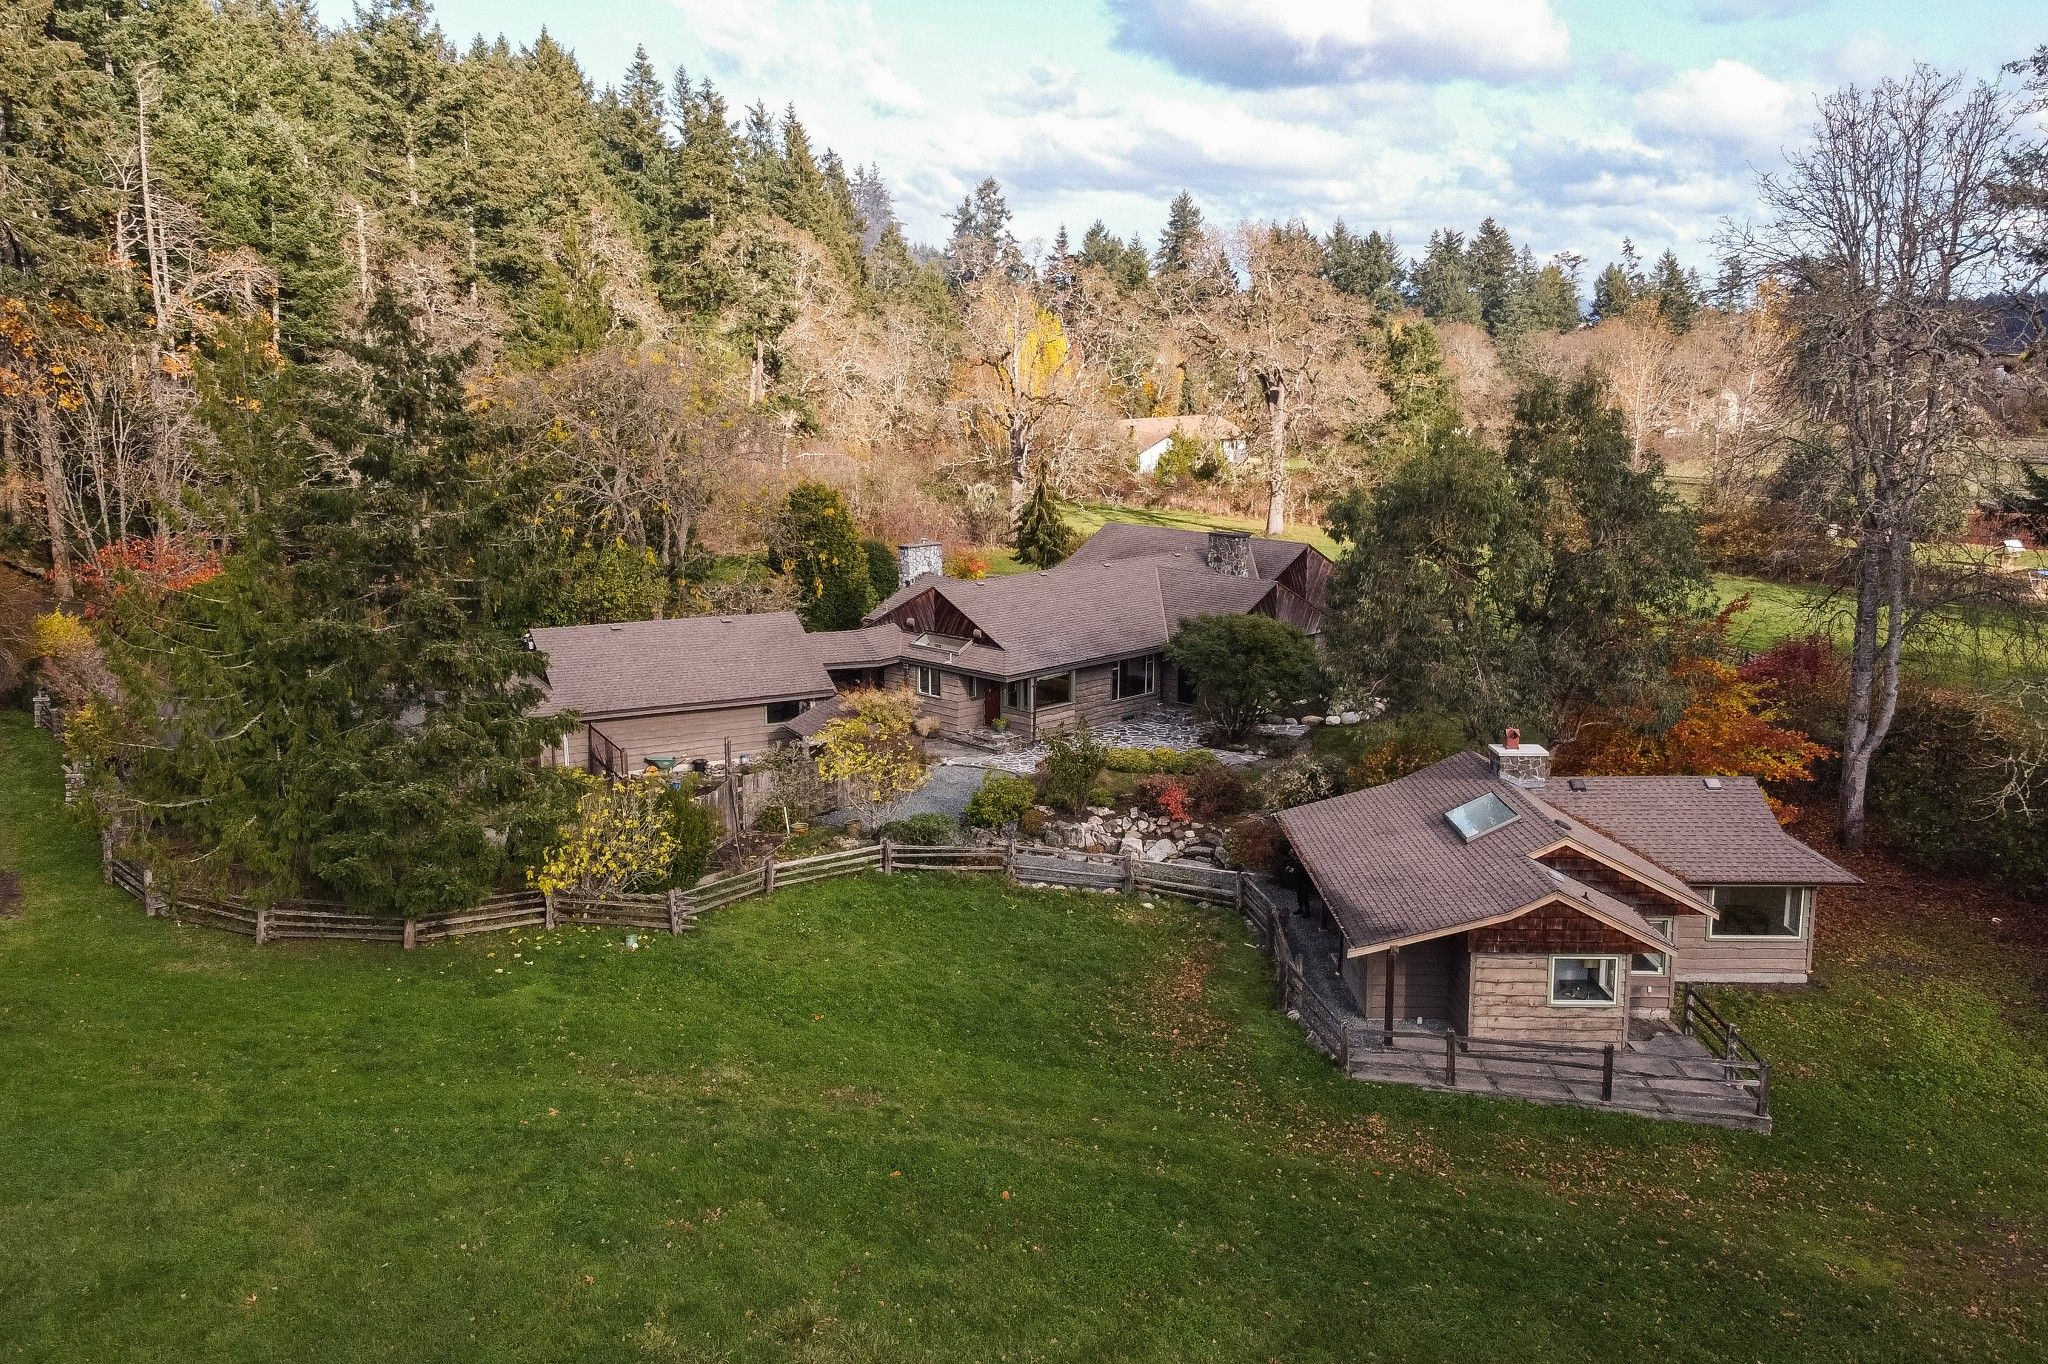 Main Photo: 903 Bradley Dyne Rd in : NS Ardmore House for sale (North Saanich)  : MLS®# 870746